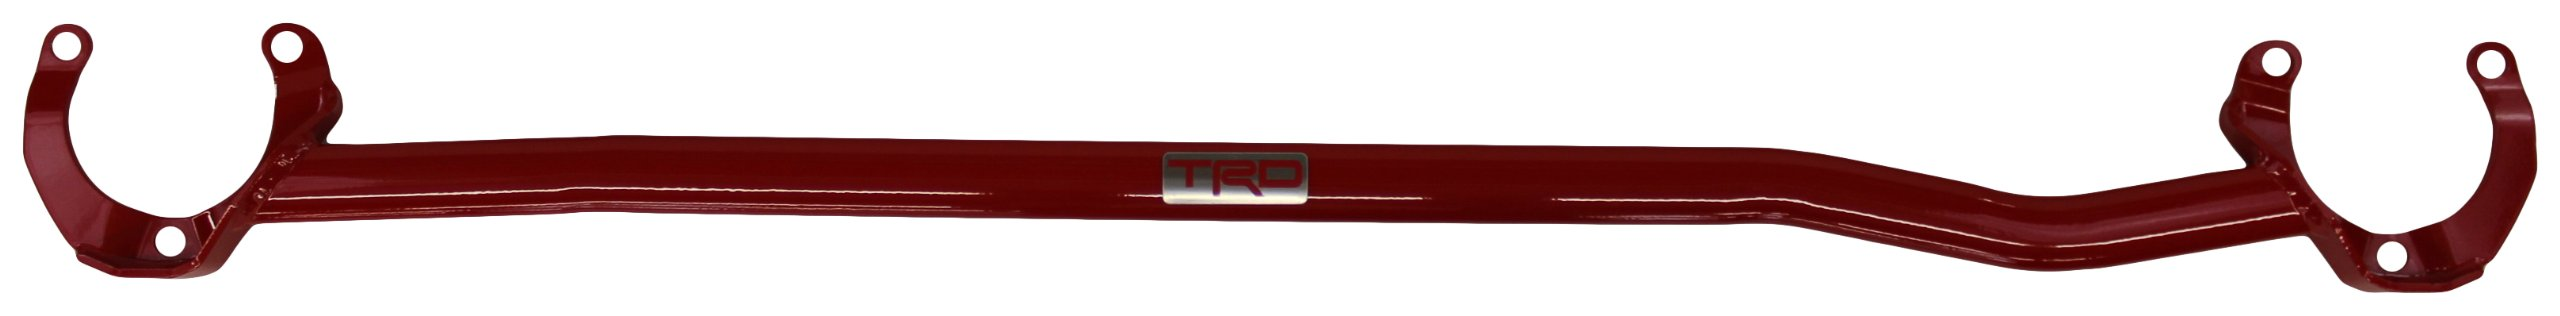 Genuine Toyota Parts PTR02-12080 TRD Chassis Brace